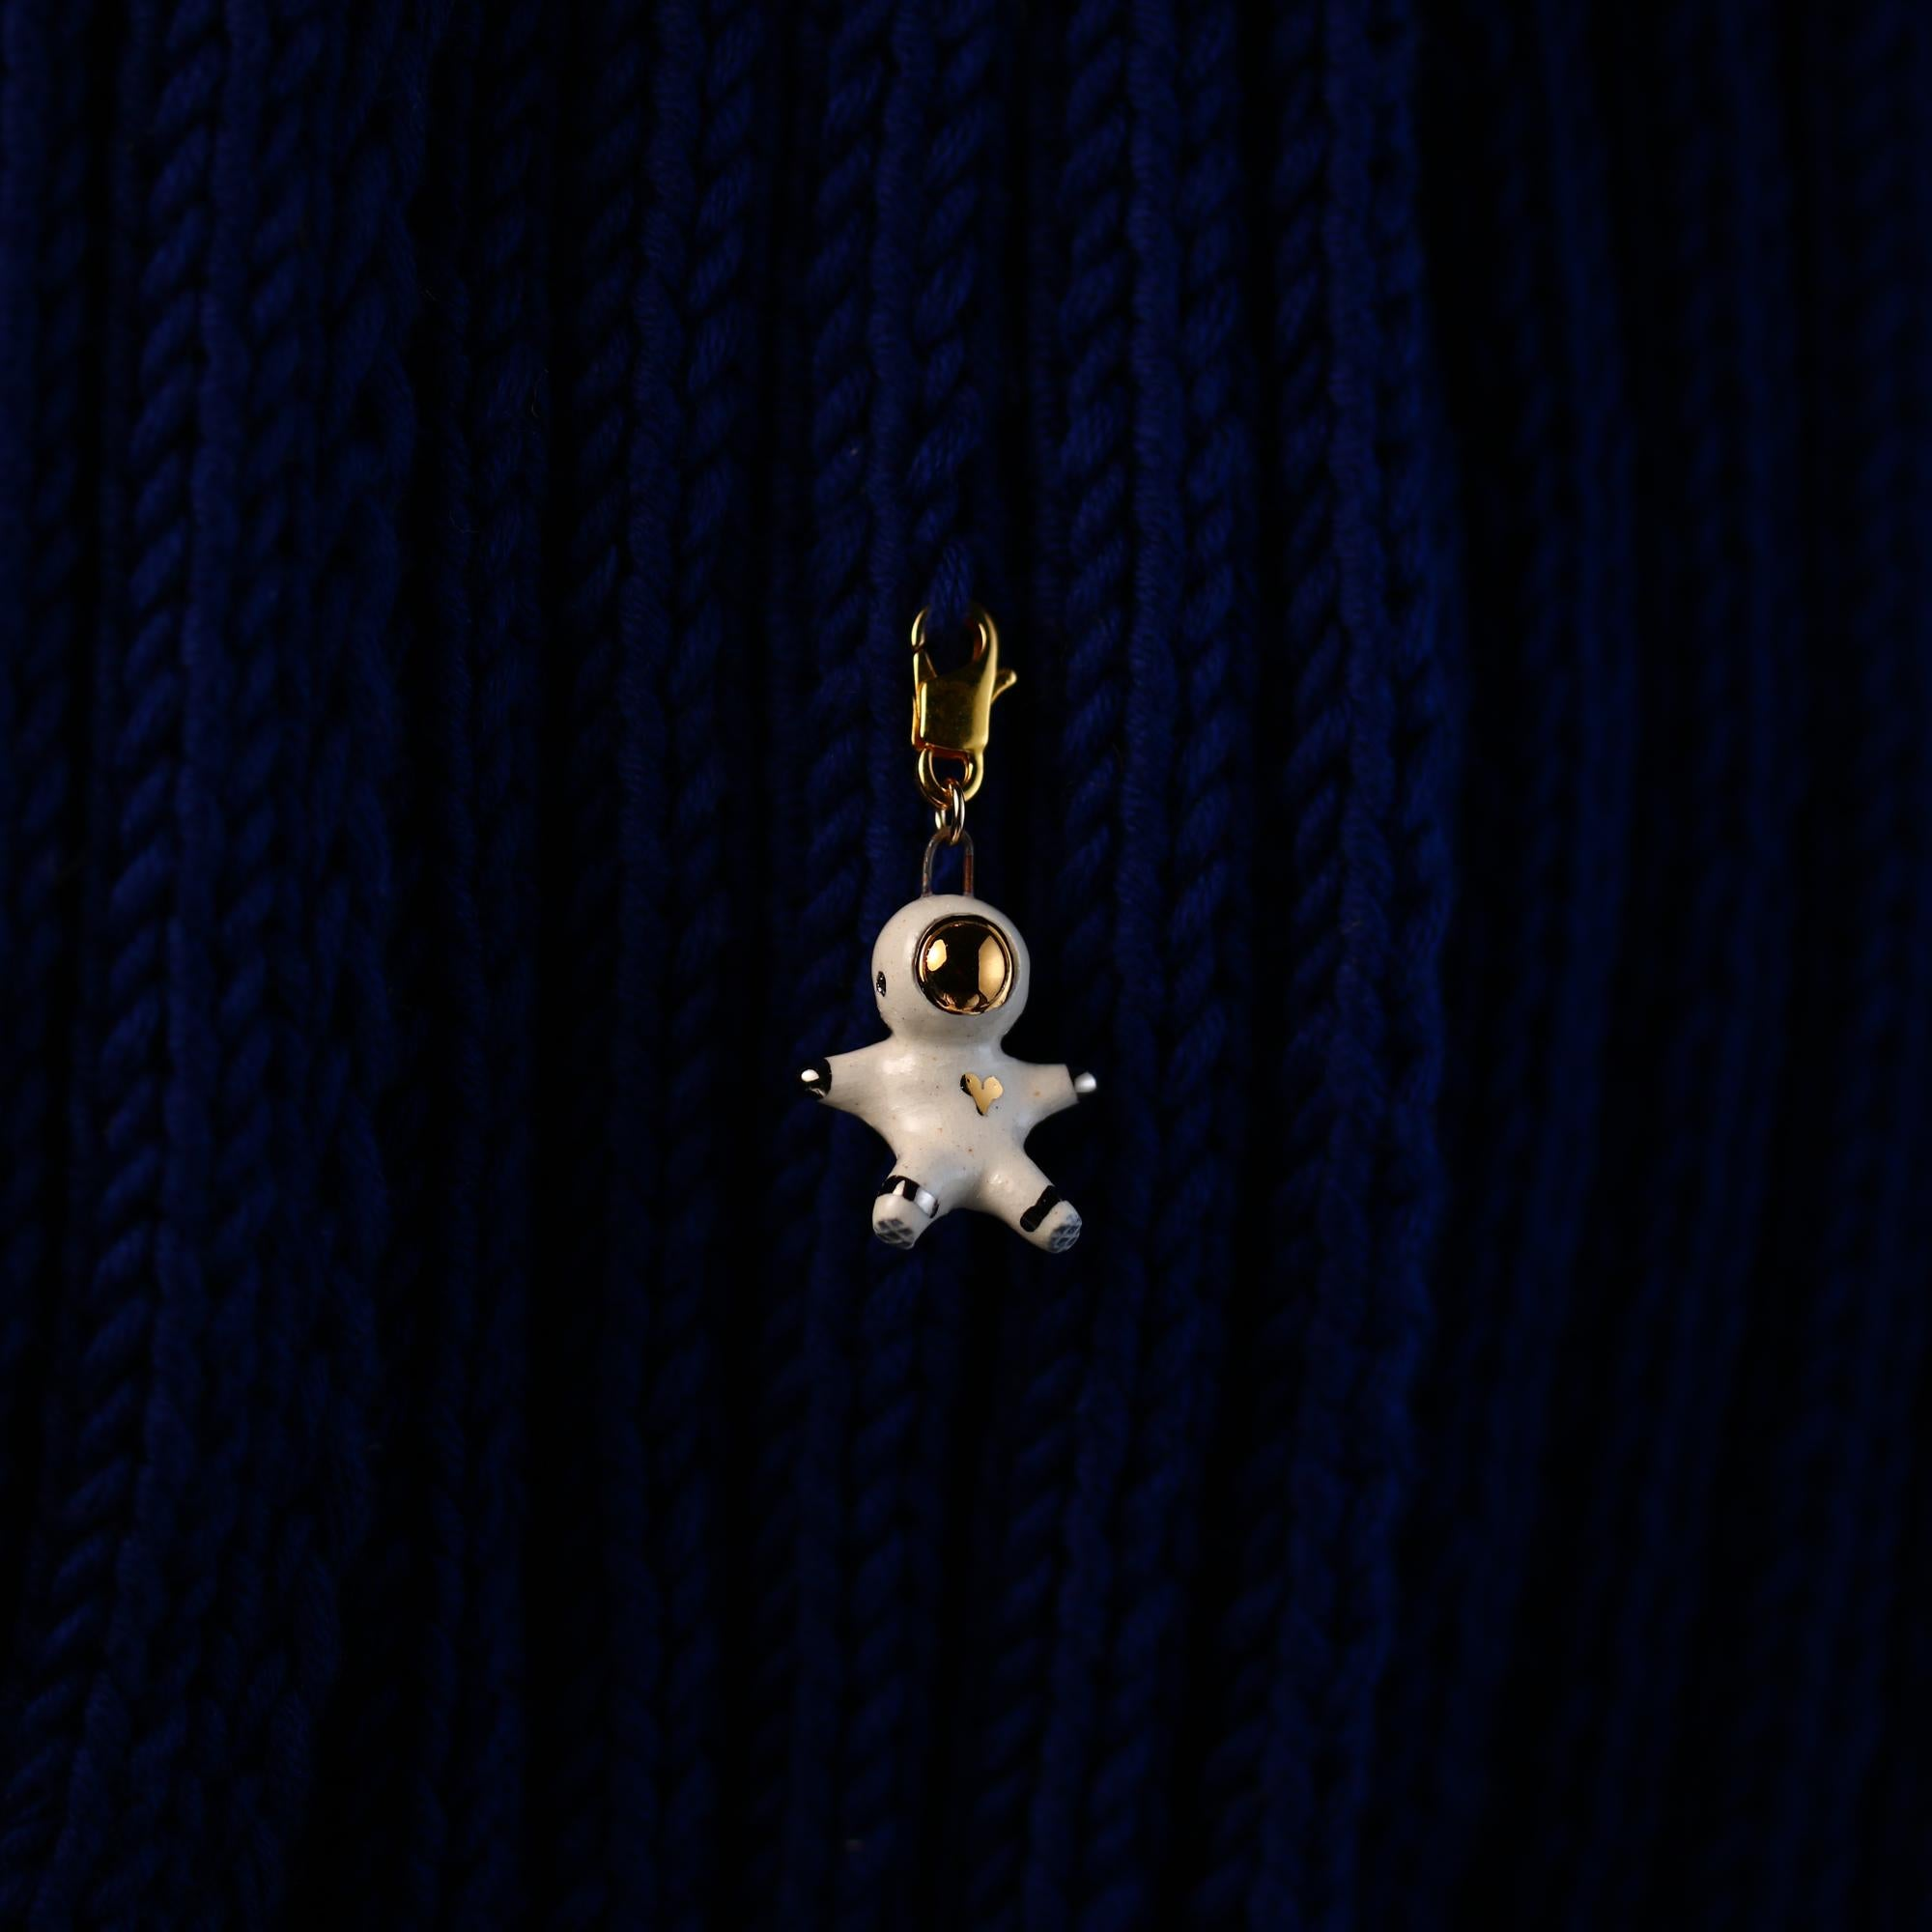 Floating Heart Astronaut Stitch Marker